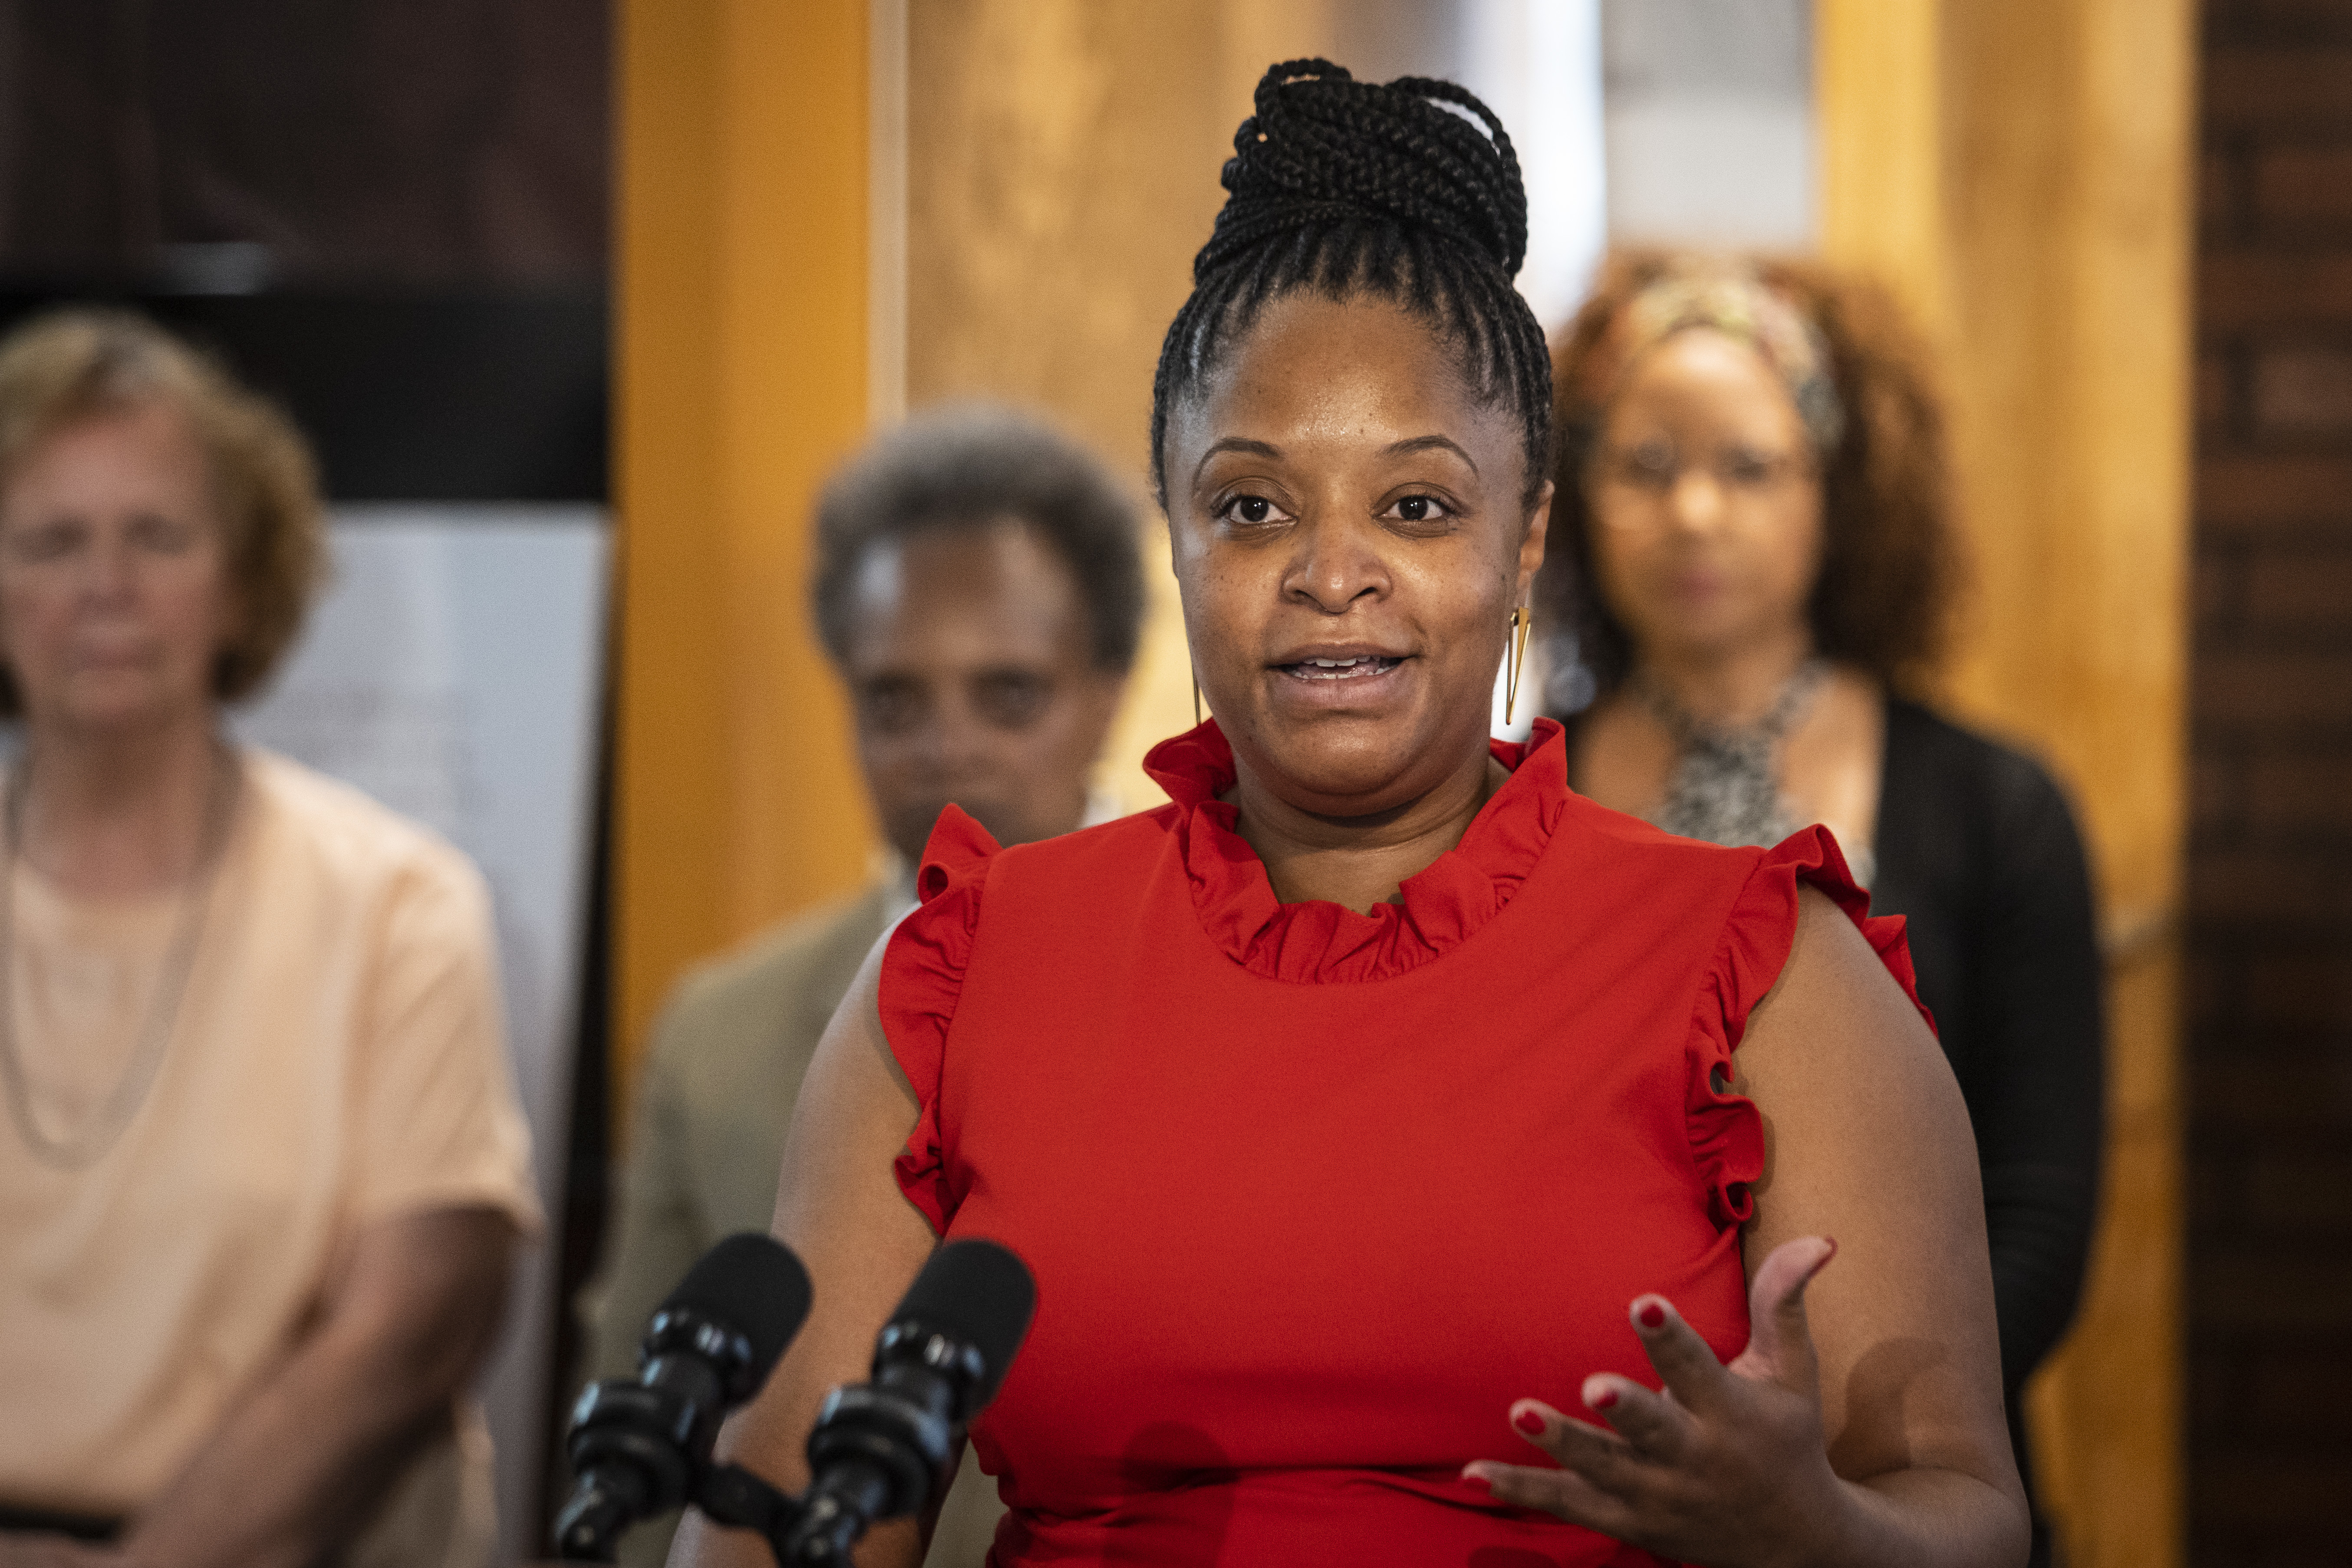 Ayesha Jaco, executive director of West Side United, speaks about racism as a public health crisis in the city of Chicago during a news conference at the MLK Exhibit Center in North Lawndale, Thursday morning, June 17, 2021.